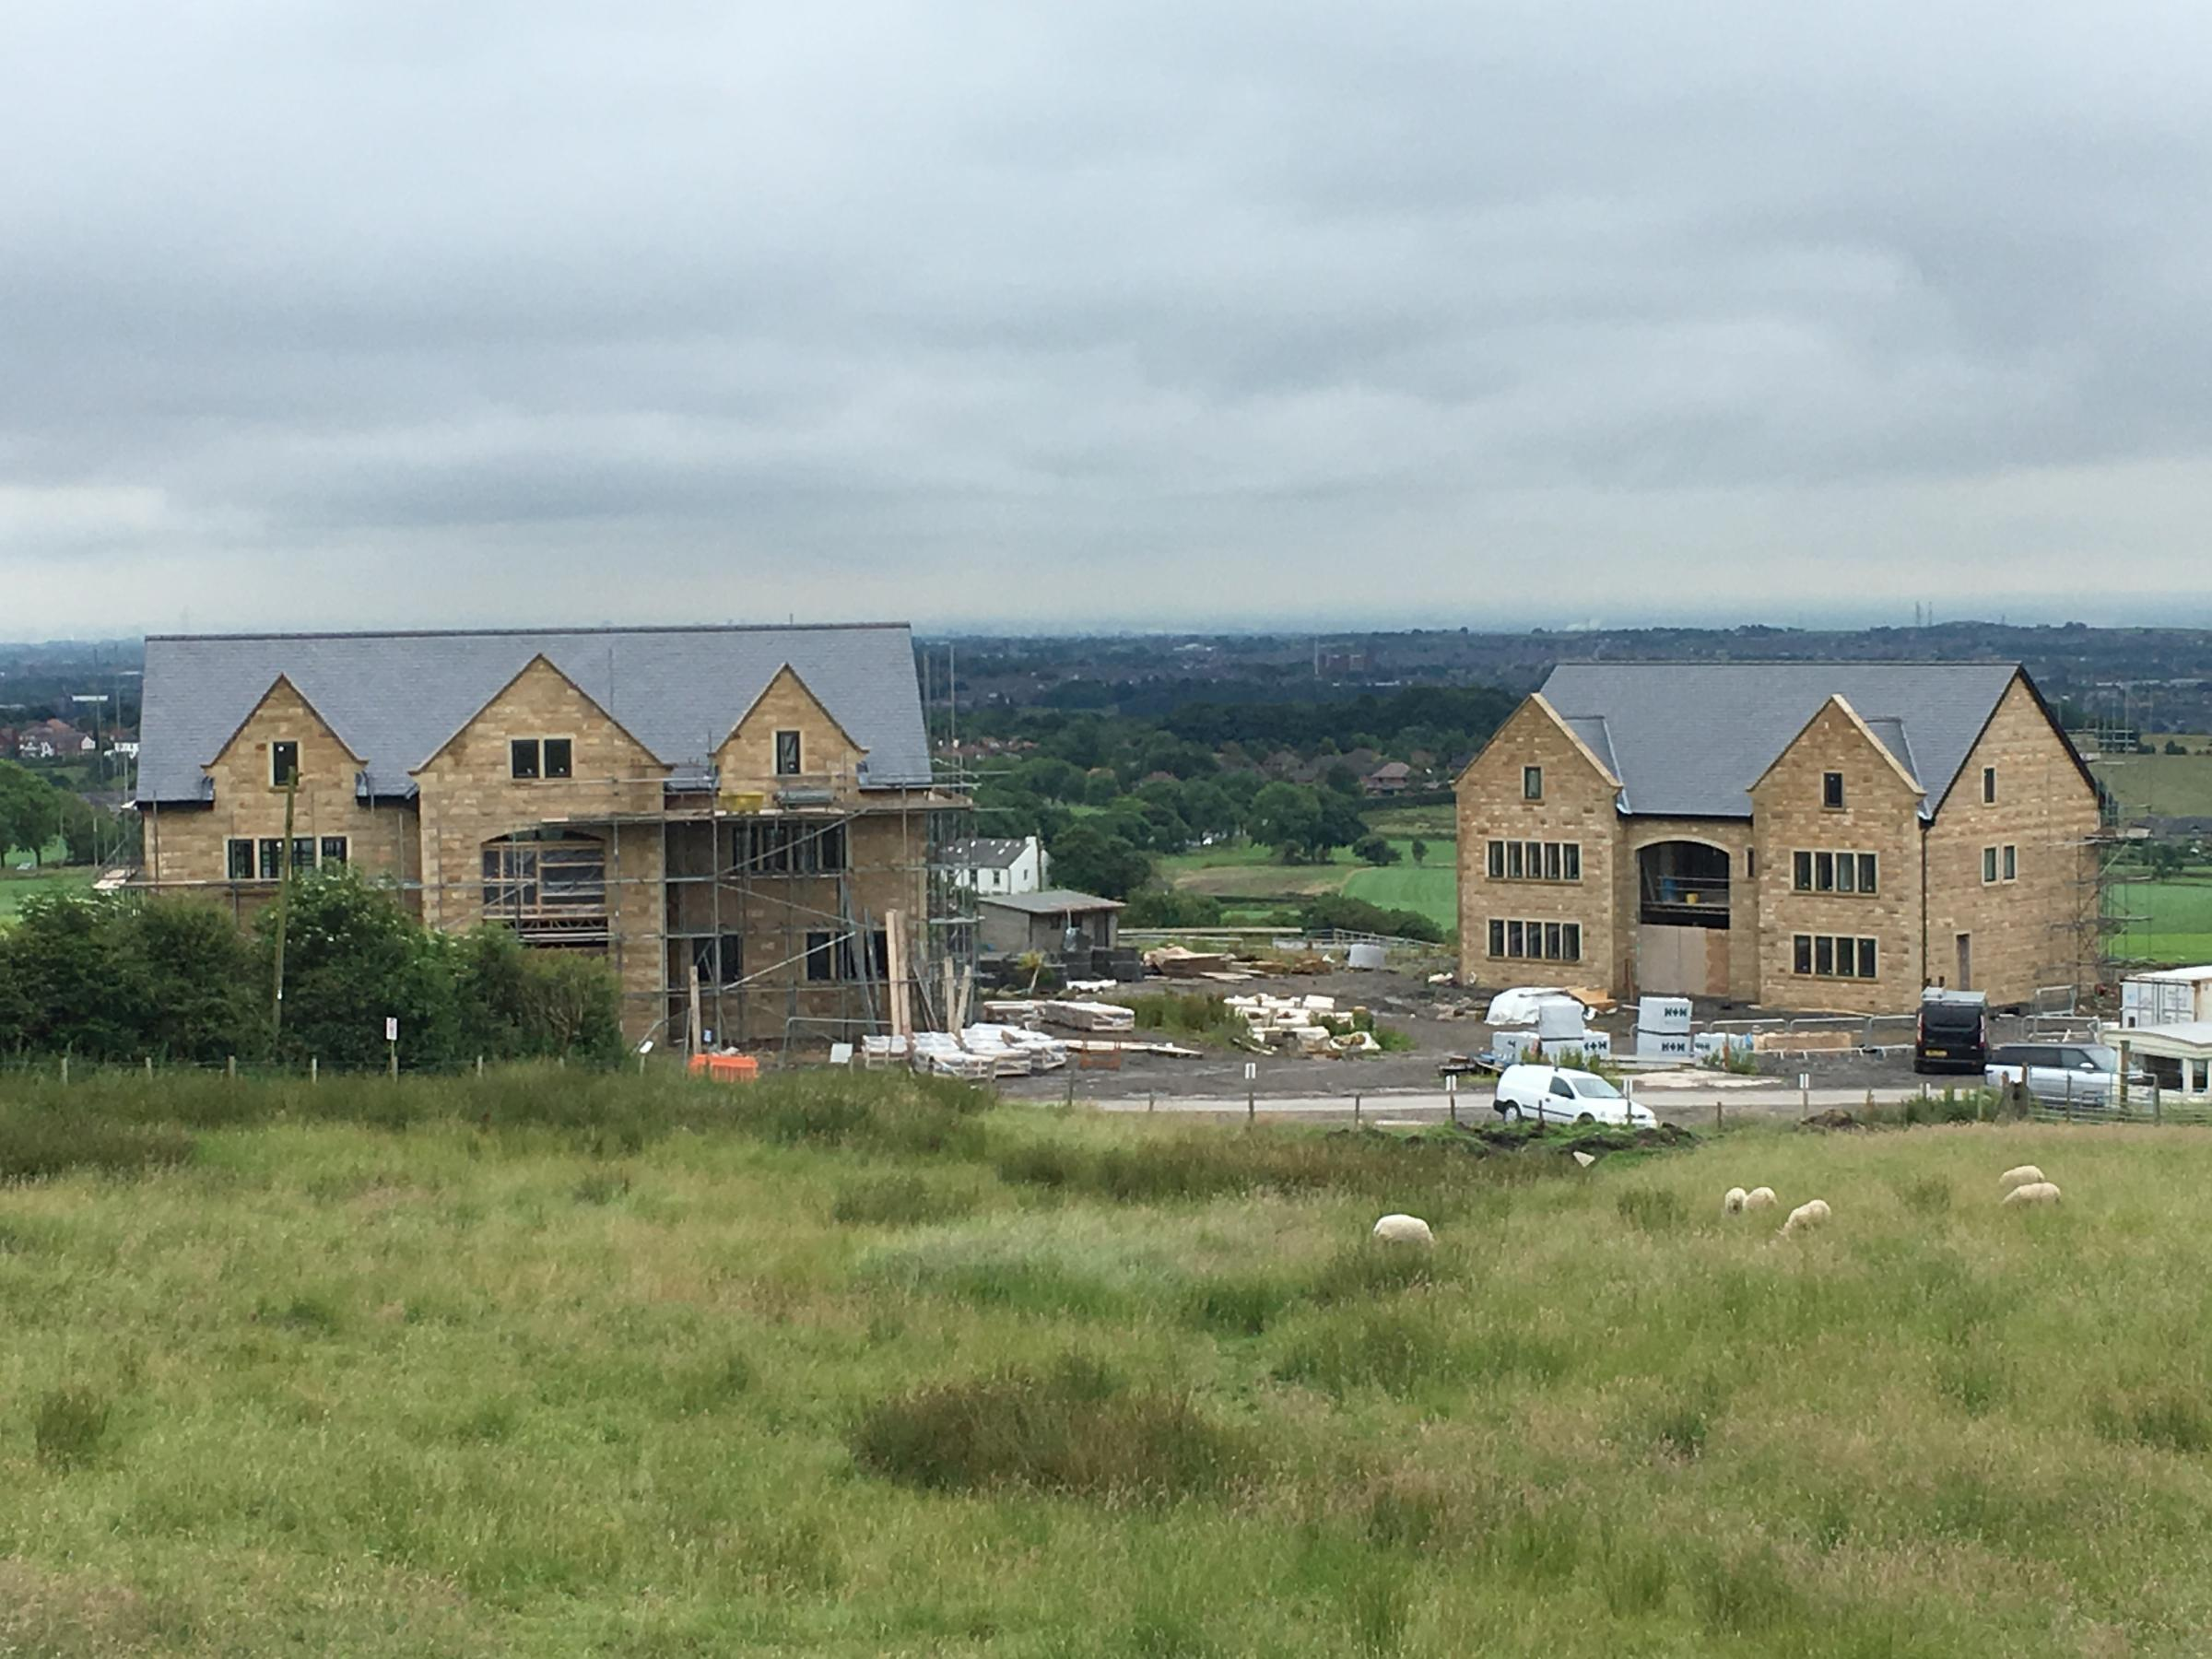 UNAUTHORISED: The homes at Grundy Fold Farm, Chorley New Road, Horwich that were built without planning permission